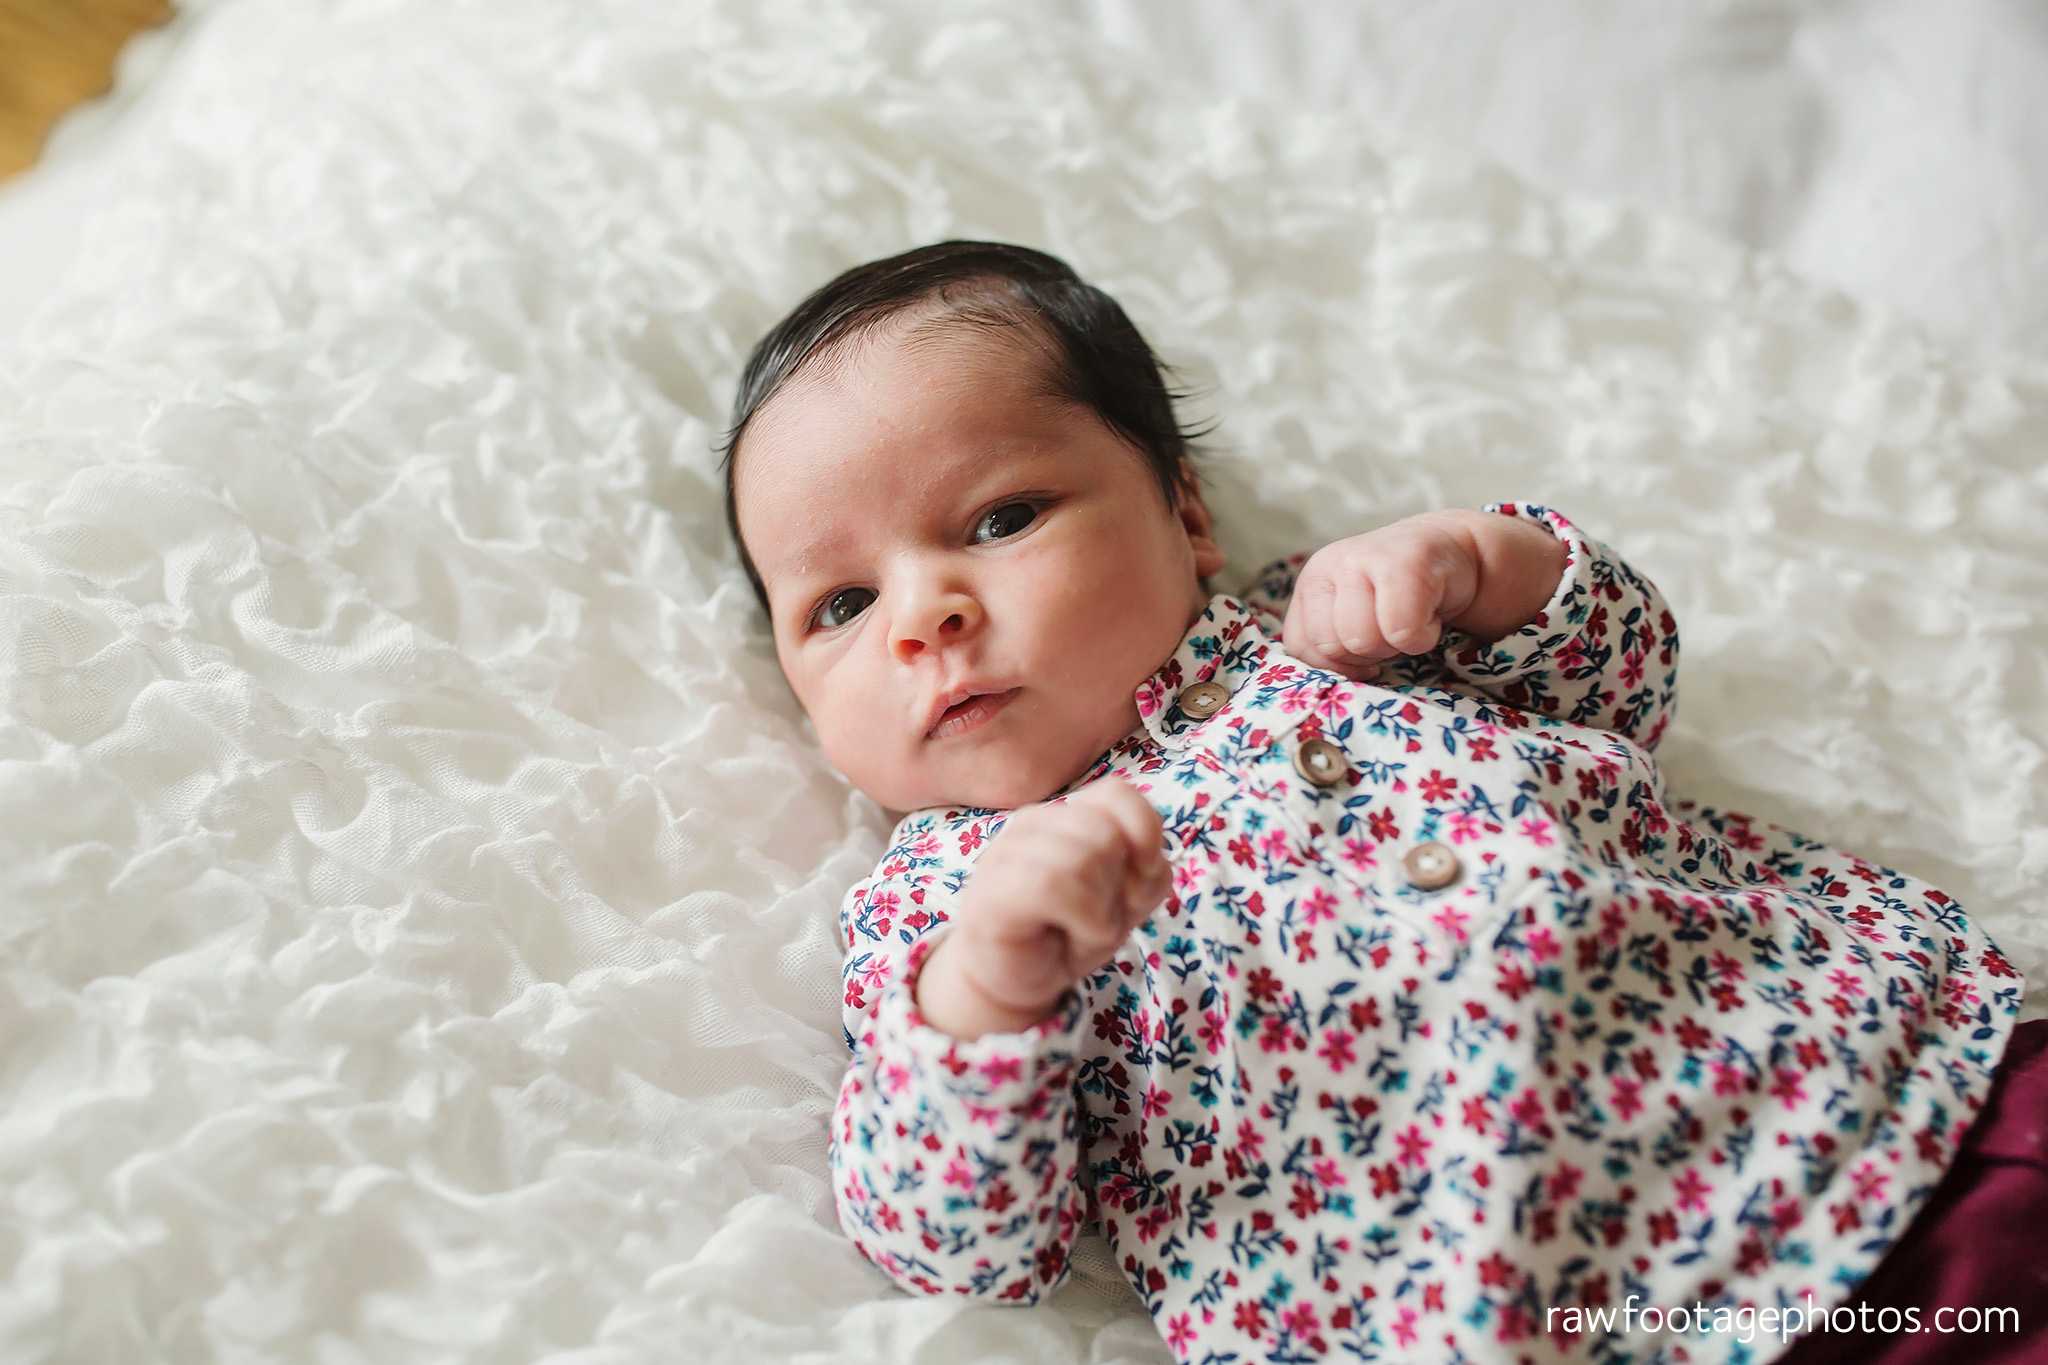 london_ontario_newborn_lifestyle_photographer-raw_footage_photography008.jpg